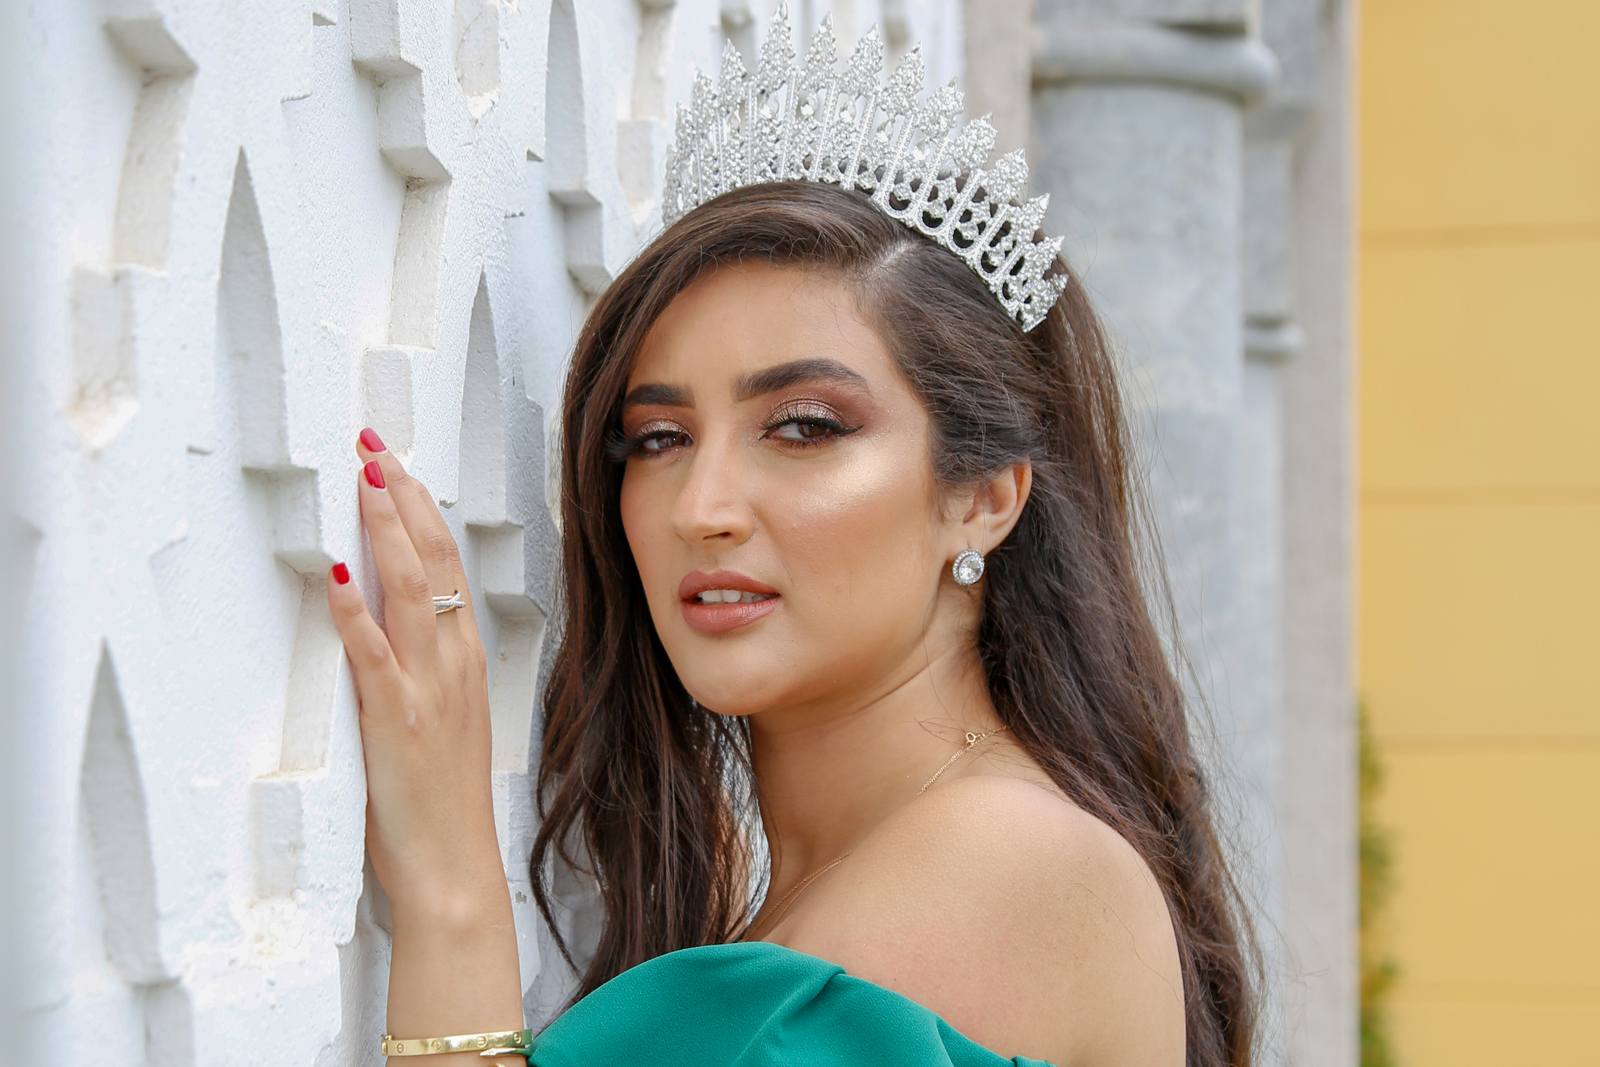 Miss Arab World – Shooting Feryel Ziari